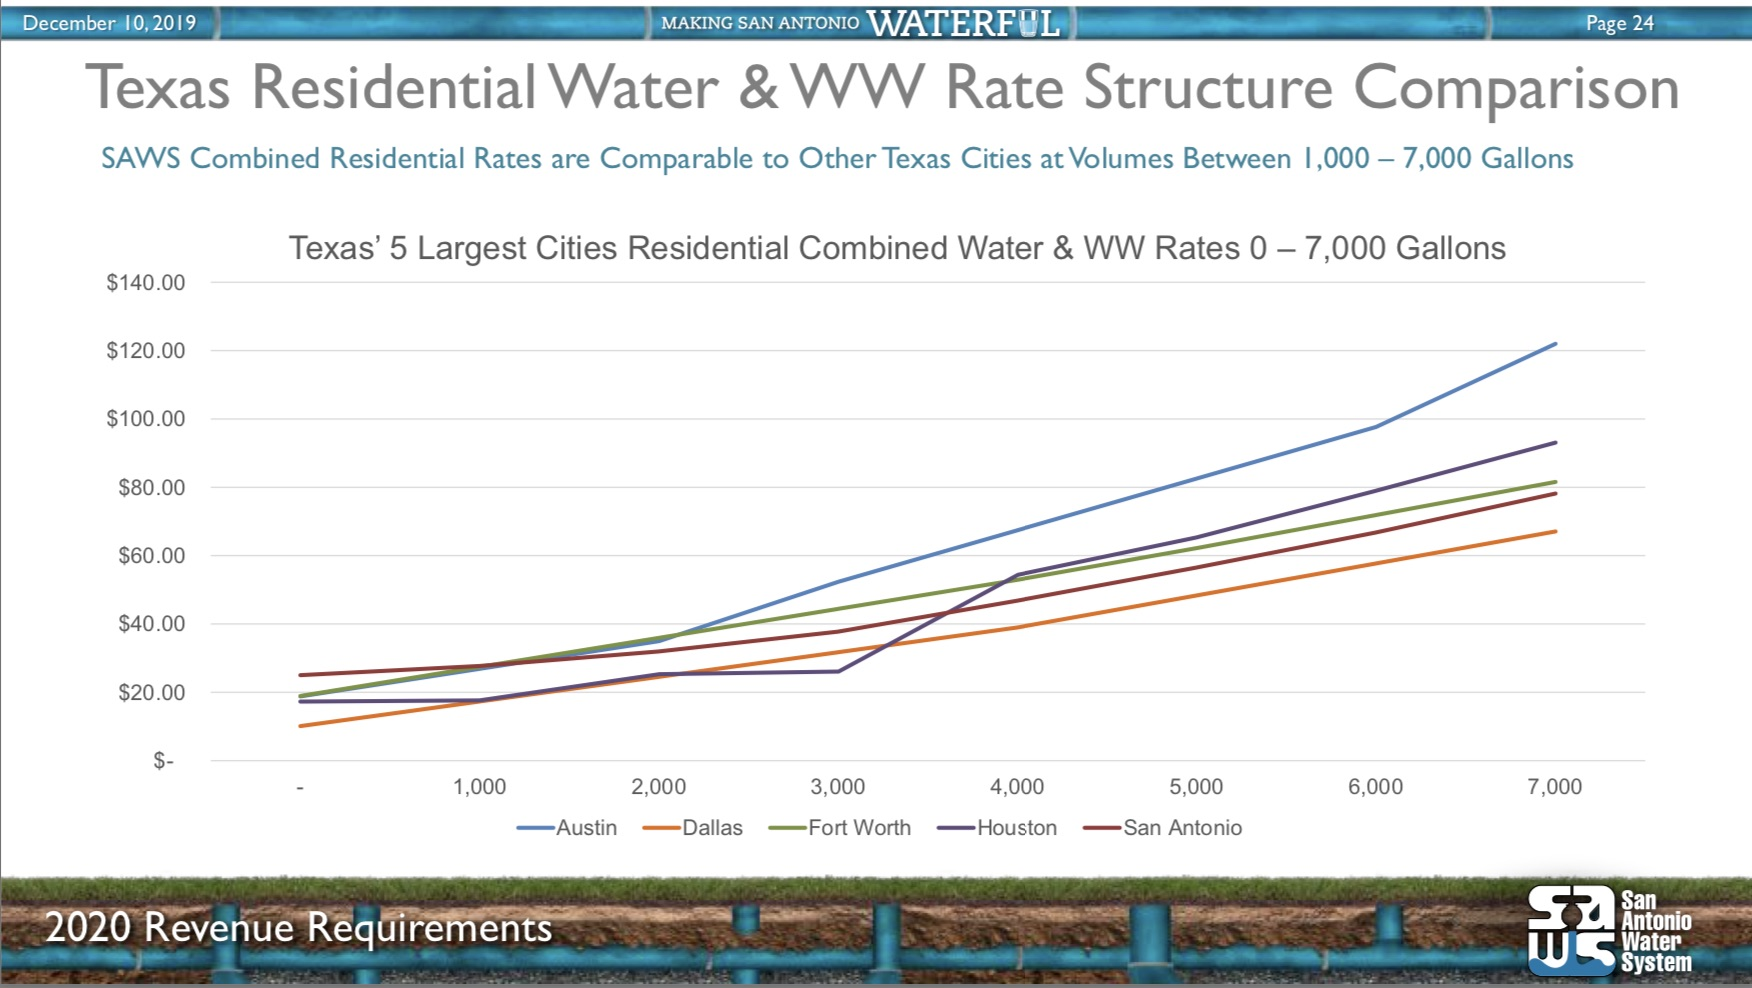 SAWS has the highest fixed charges of any major water utility in Texas, but relatively lower volumetric rates.